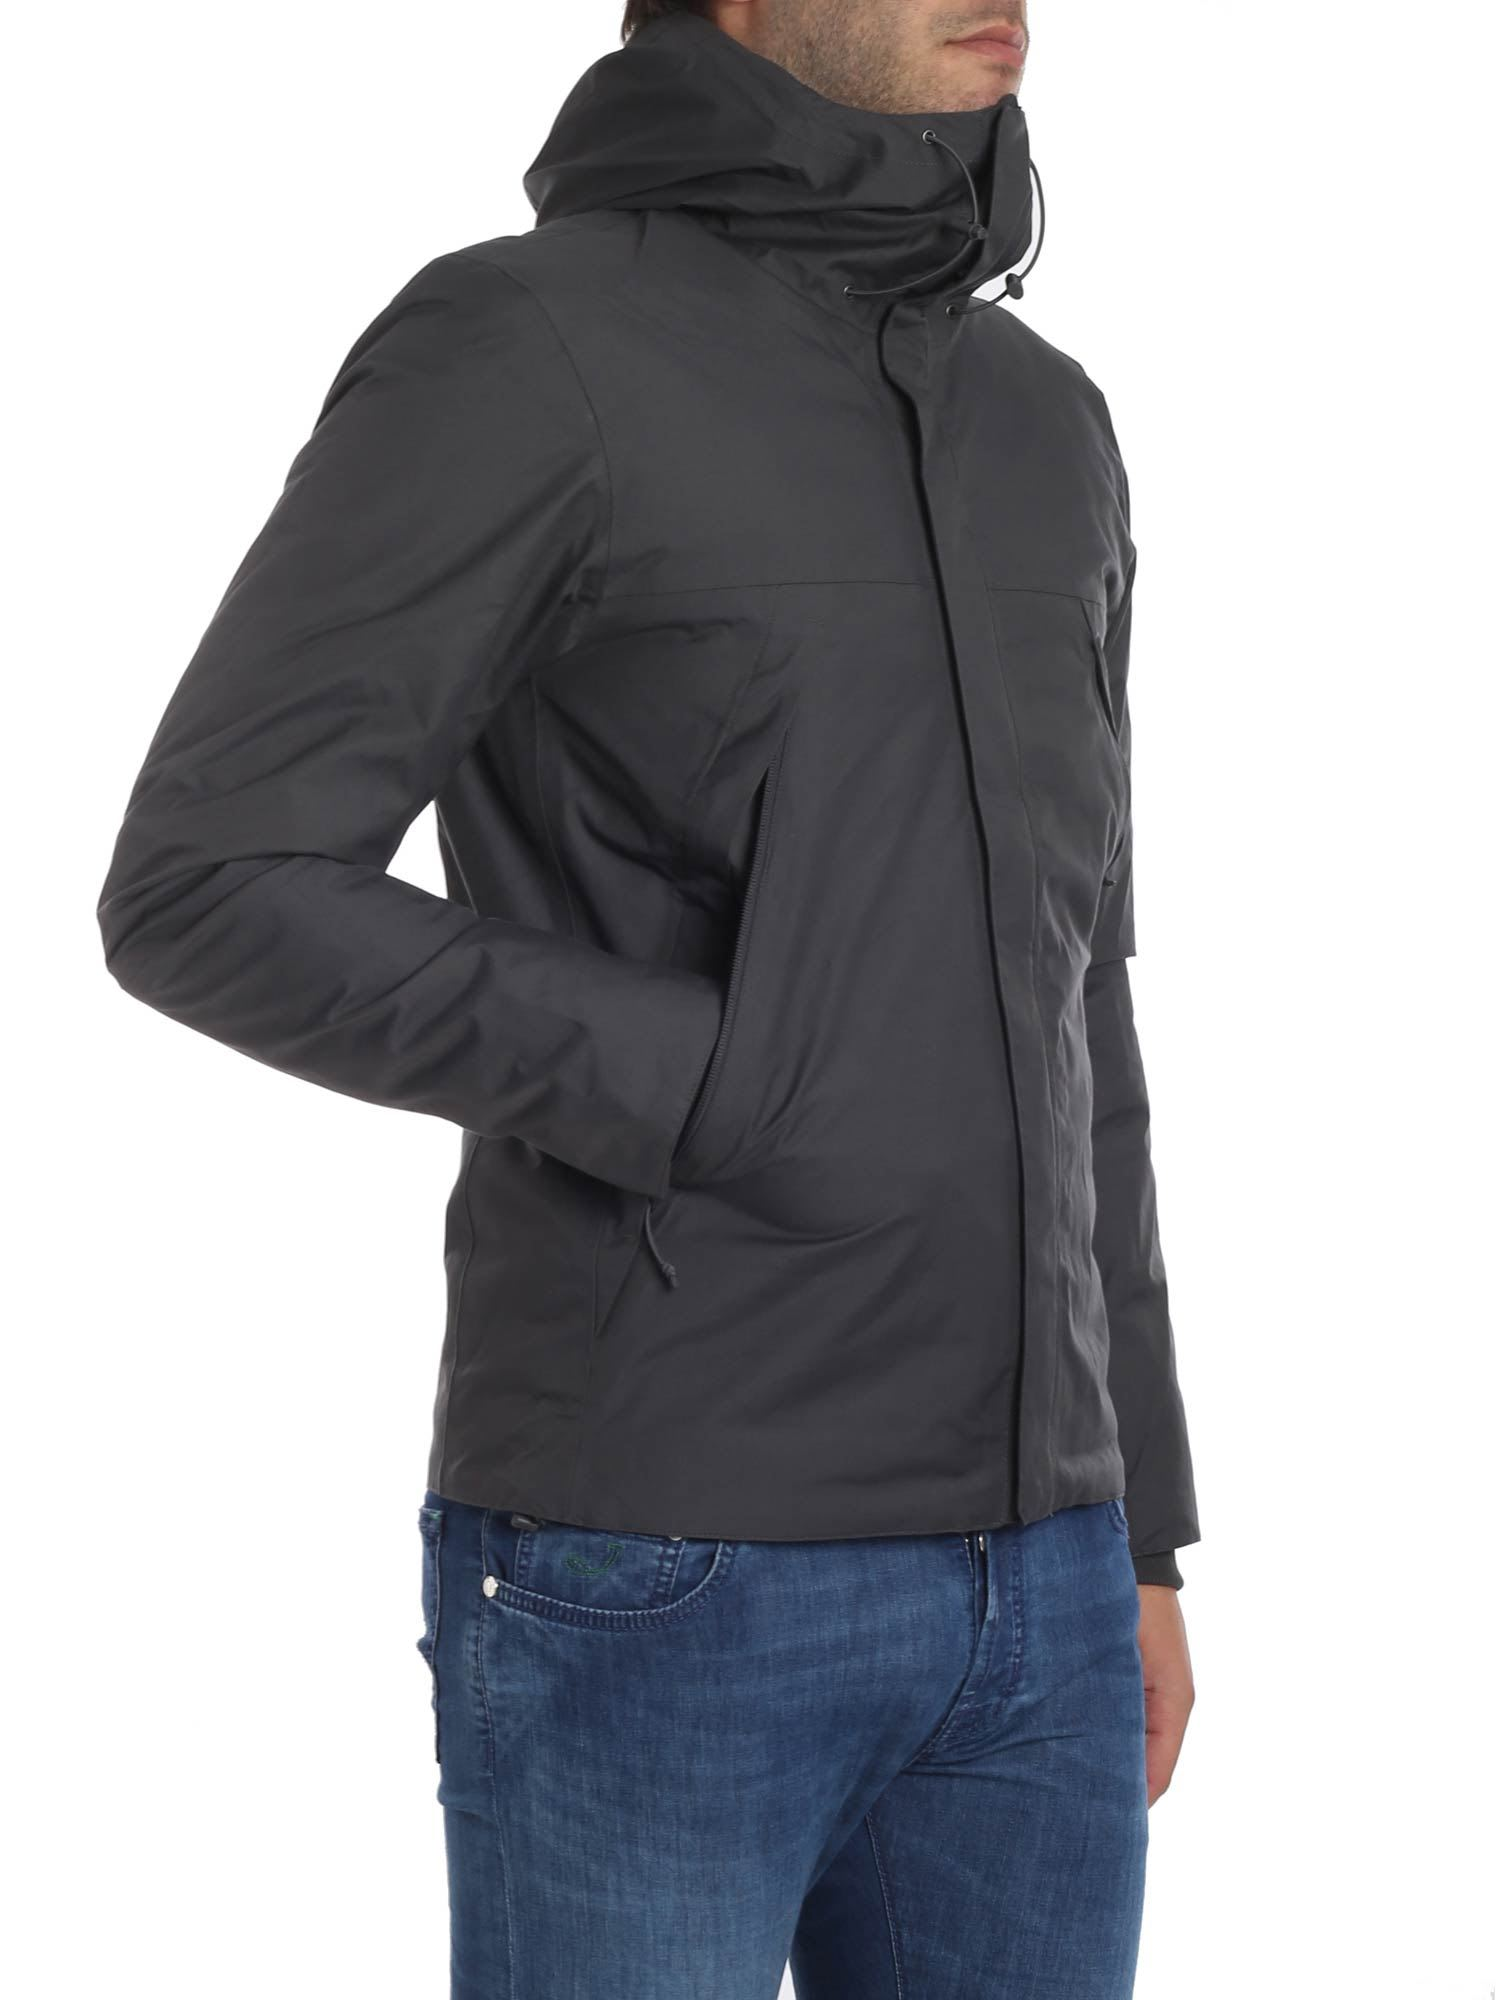 5ade7ccc5 The North Face The North Face 1990 Thermoball Mountain Jacket ...